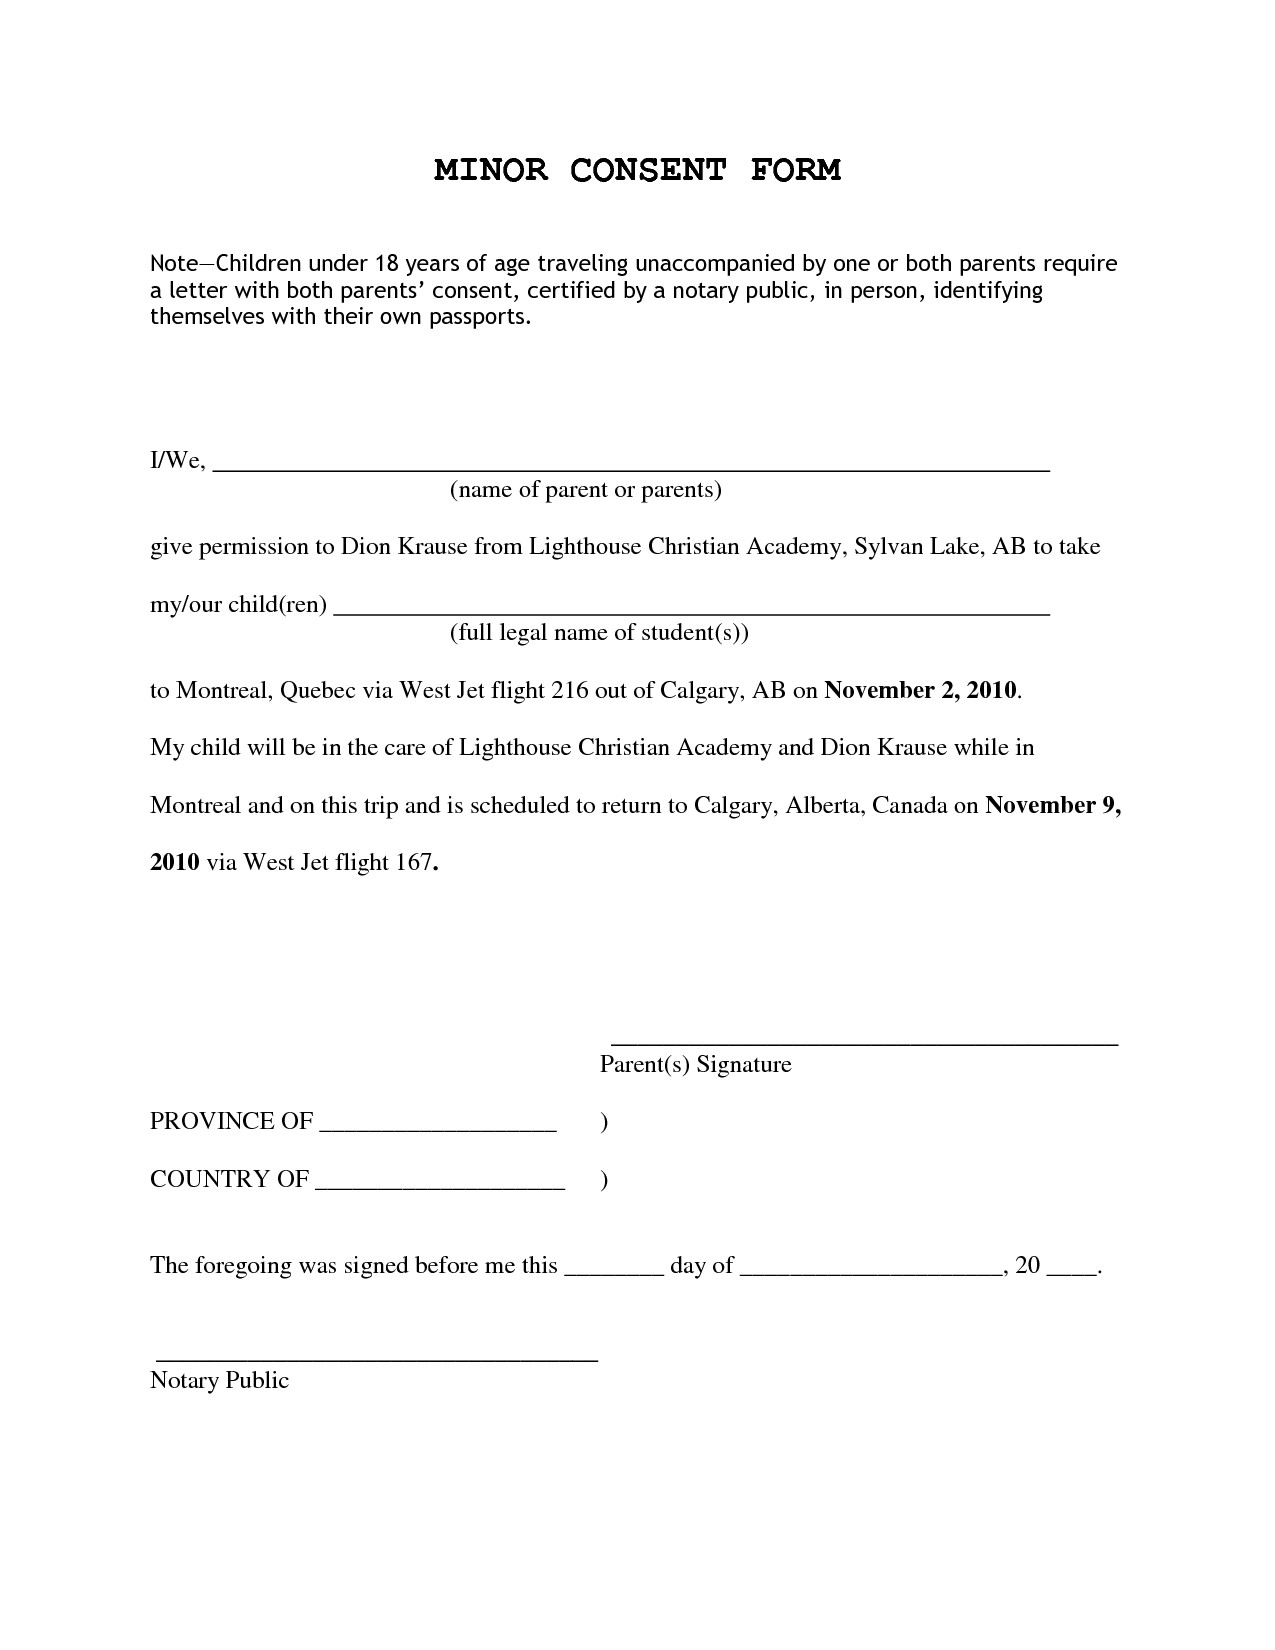 Notarized Travel Consent Letter Template - Sample Permission Letter to Travel Best Notarized Letter